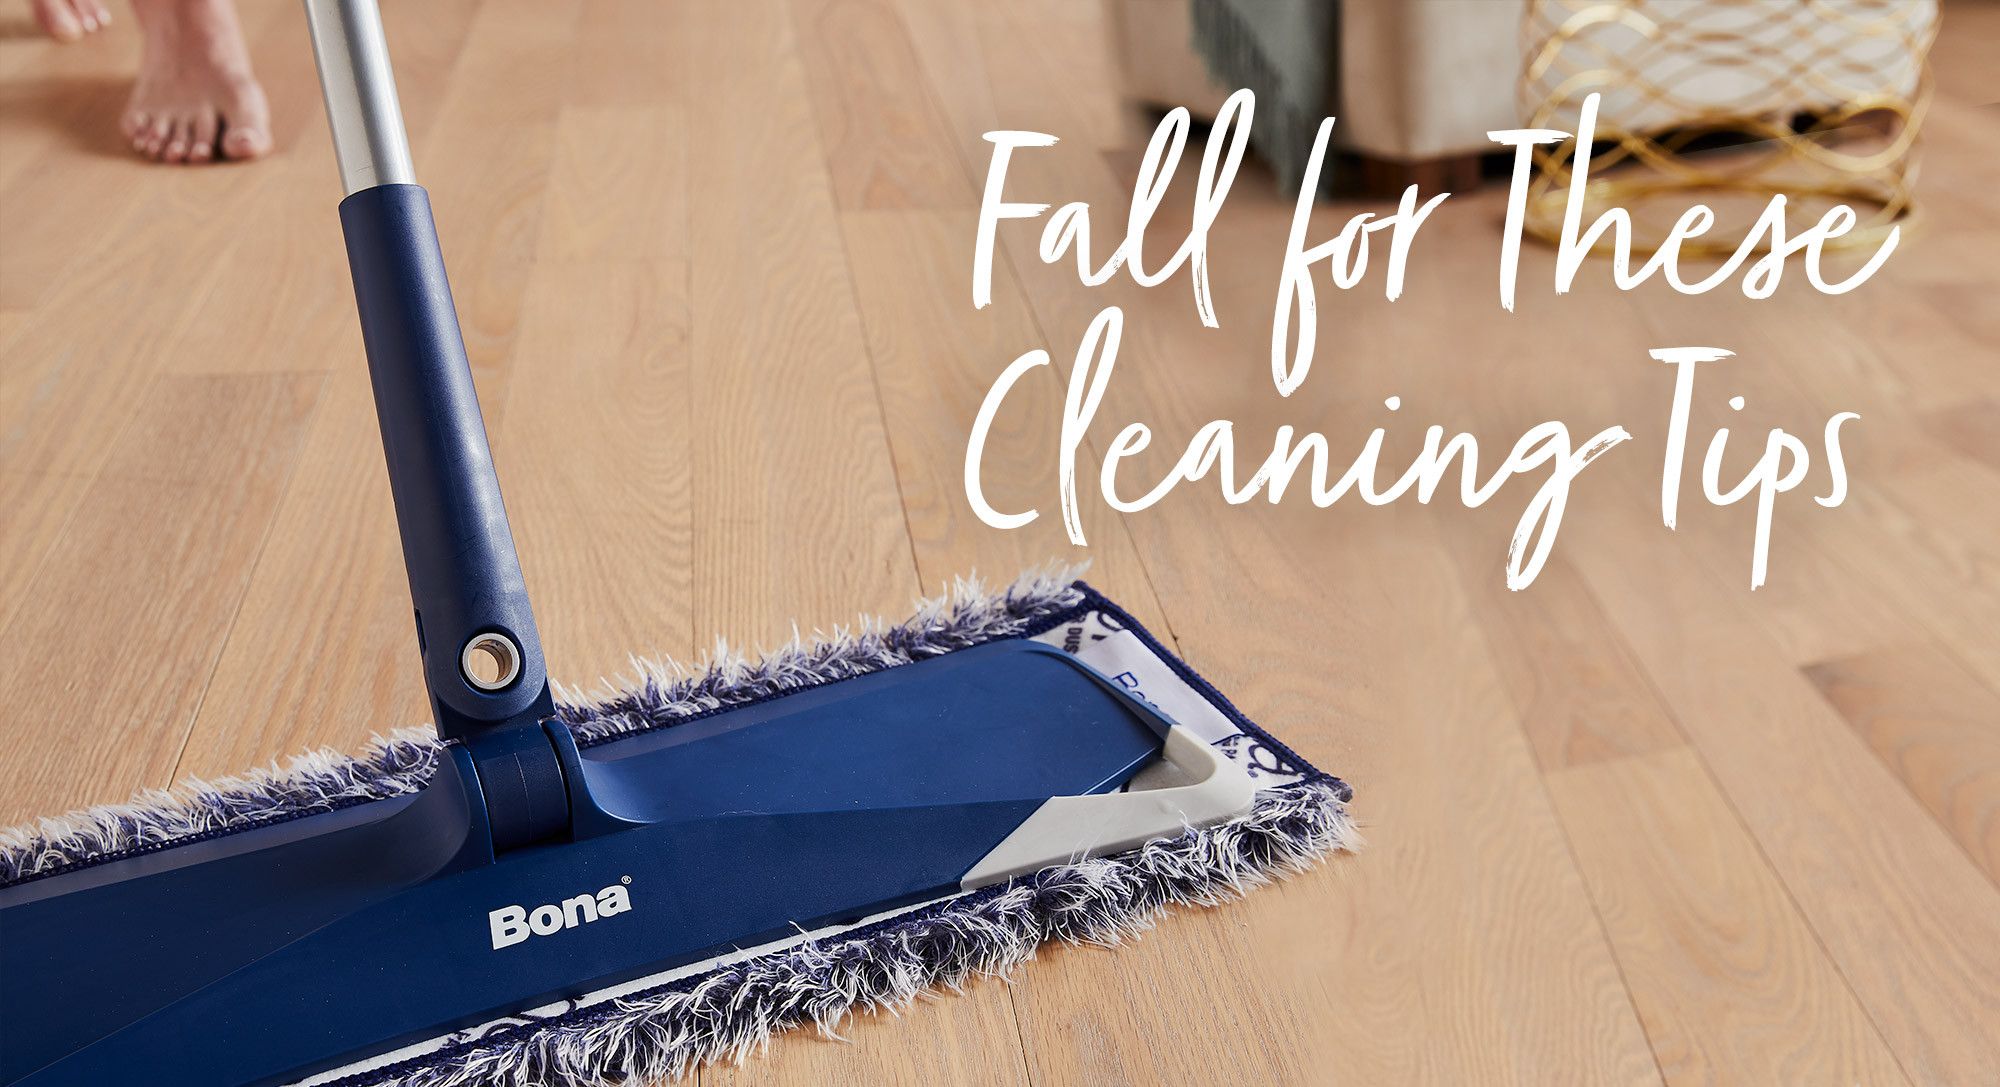 bona ultimate hardwood floor care system reviews of home bona us for fall feature2